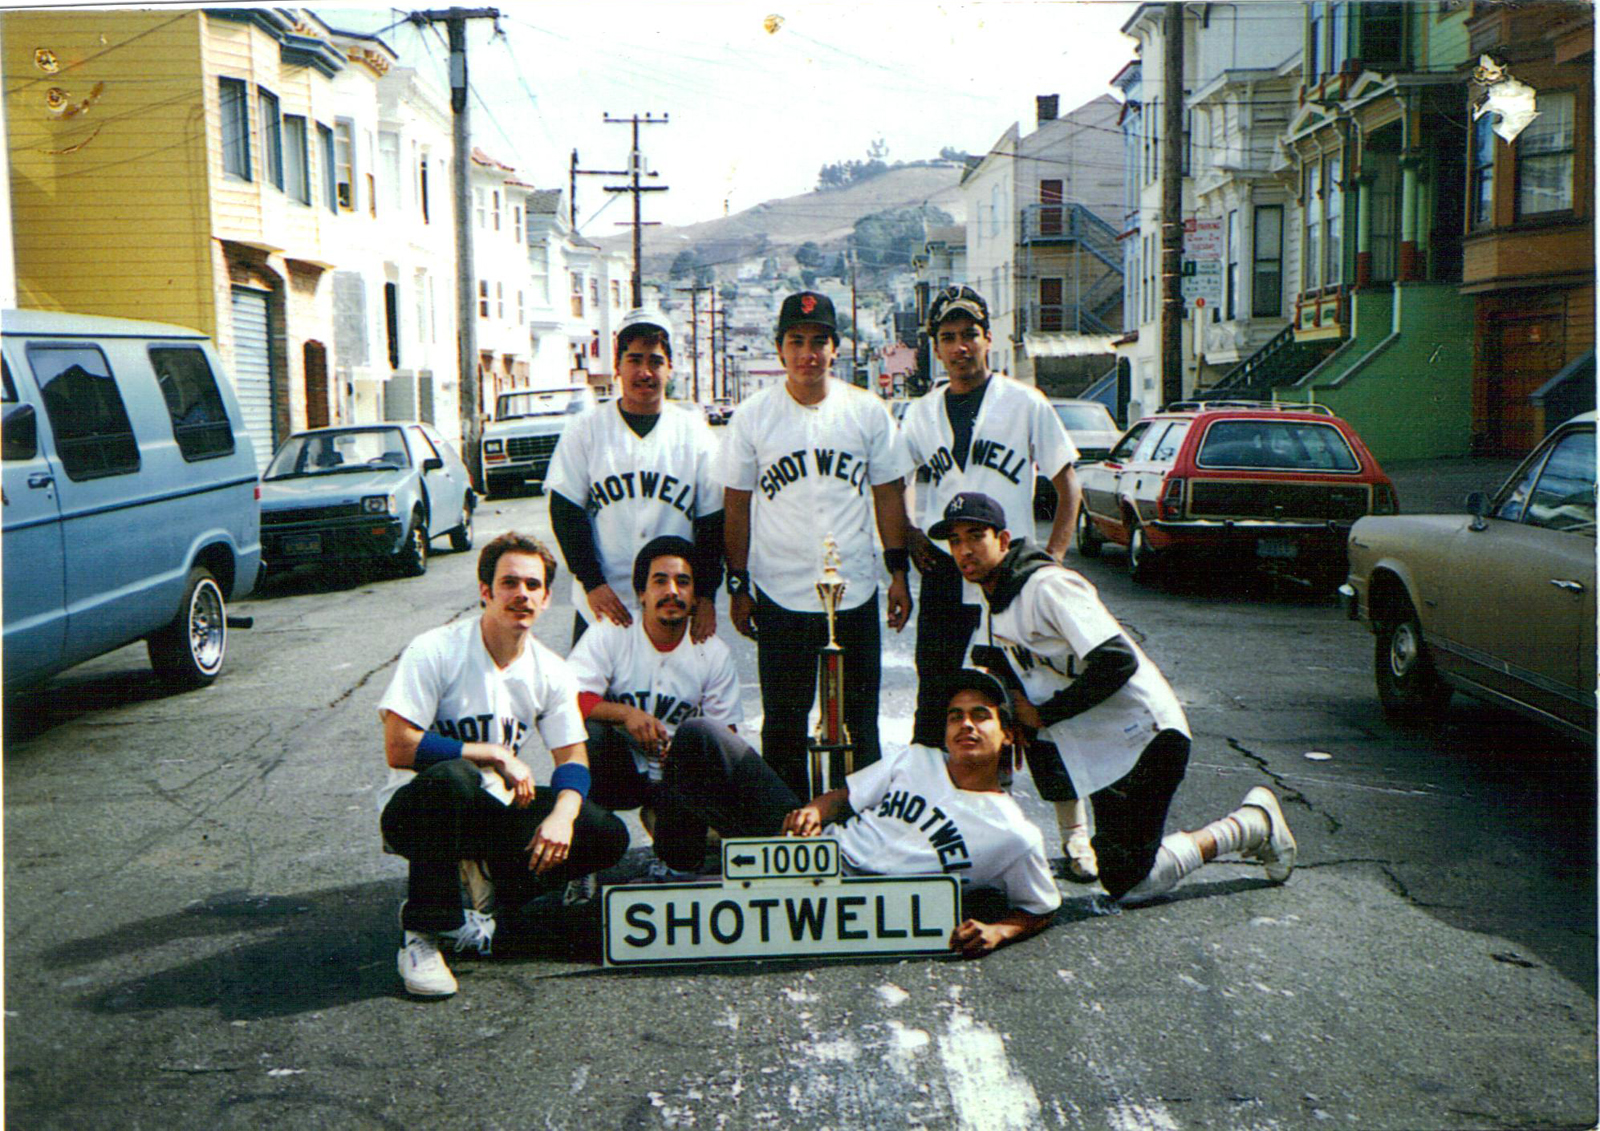 Shotwell softball team, Frank Peña kneeling on right in the early '80s. (Courtesy of Louis Lucero)